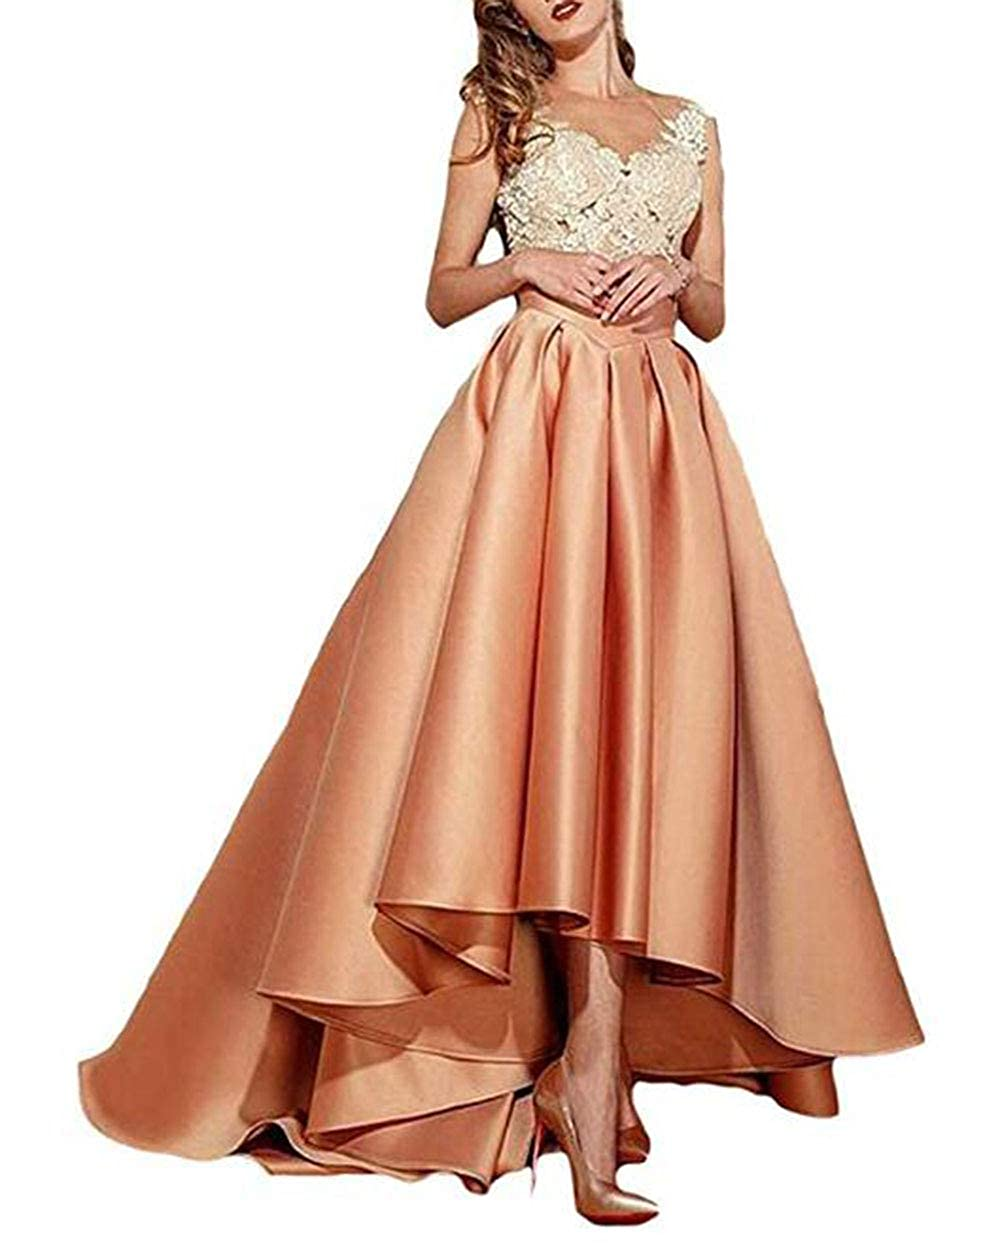 Peach alilith.Z Sexy Lace Appliques Prom Dresses High Low Formal Evening Dresses Party Gowns for Women